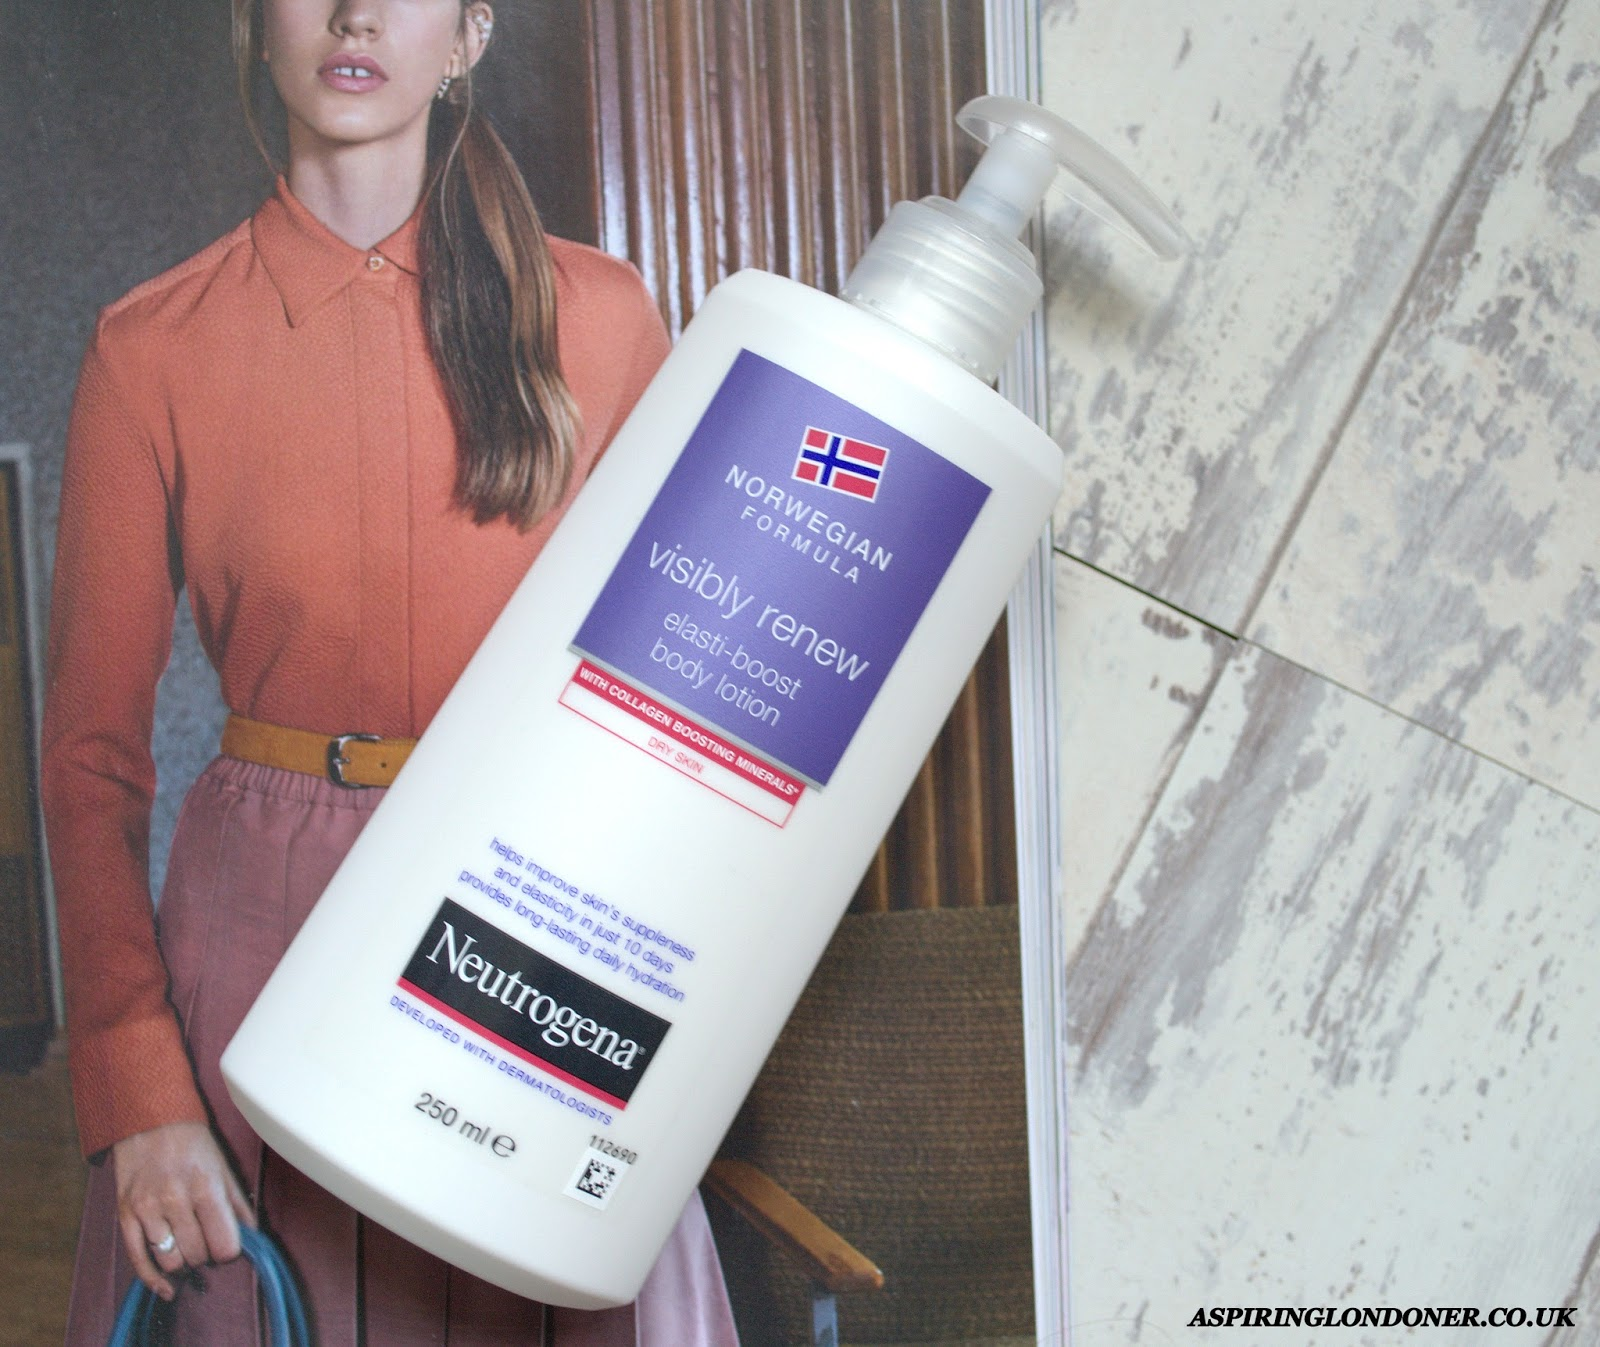 Neutrogena Visibly Renew Body Lotion Review - Aspiring Londoner